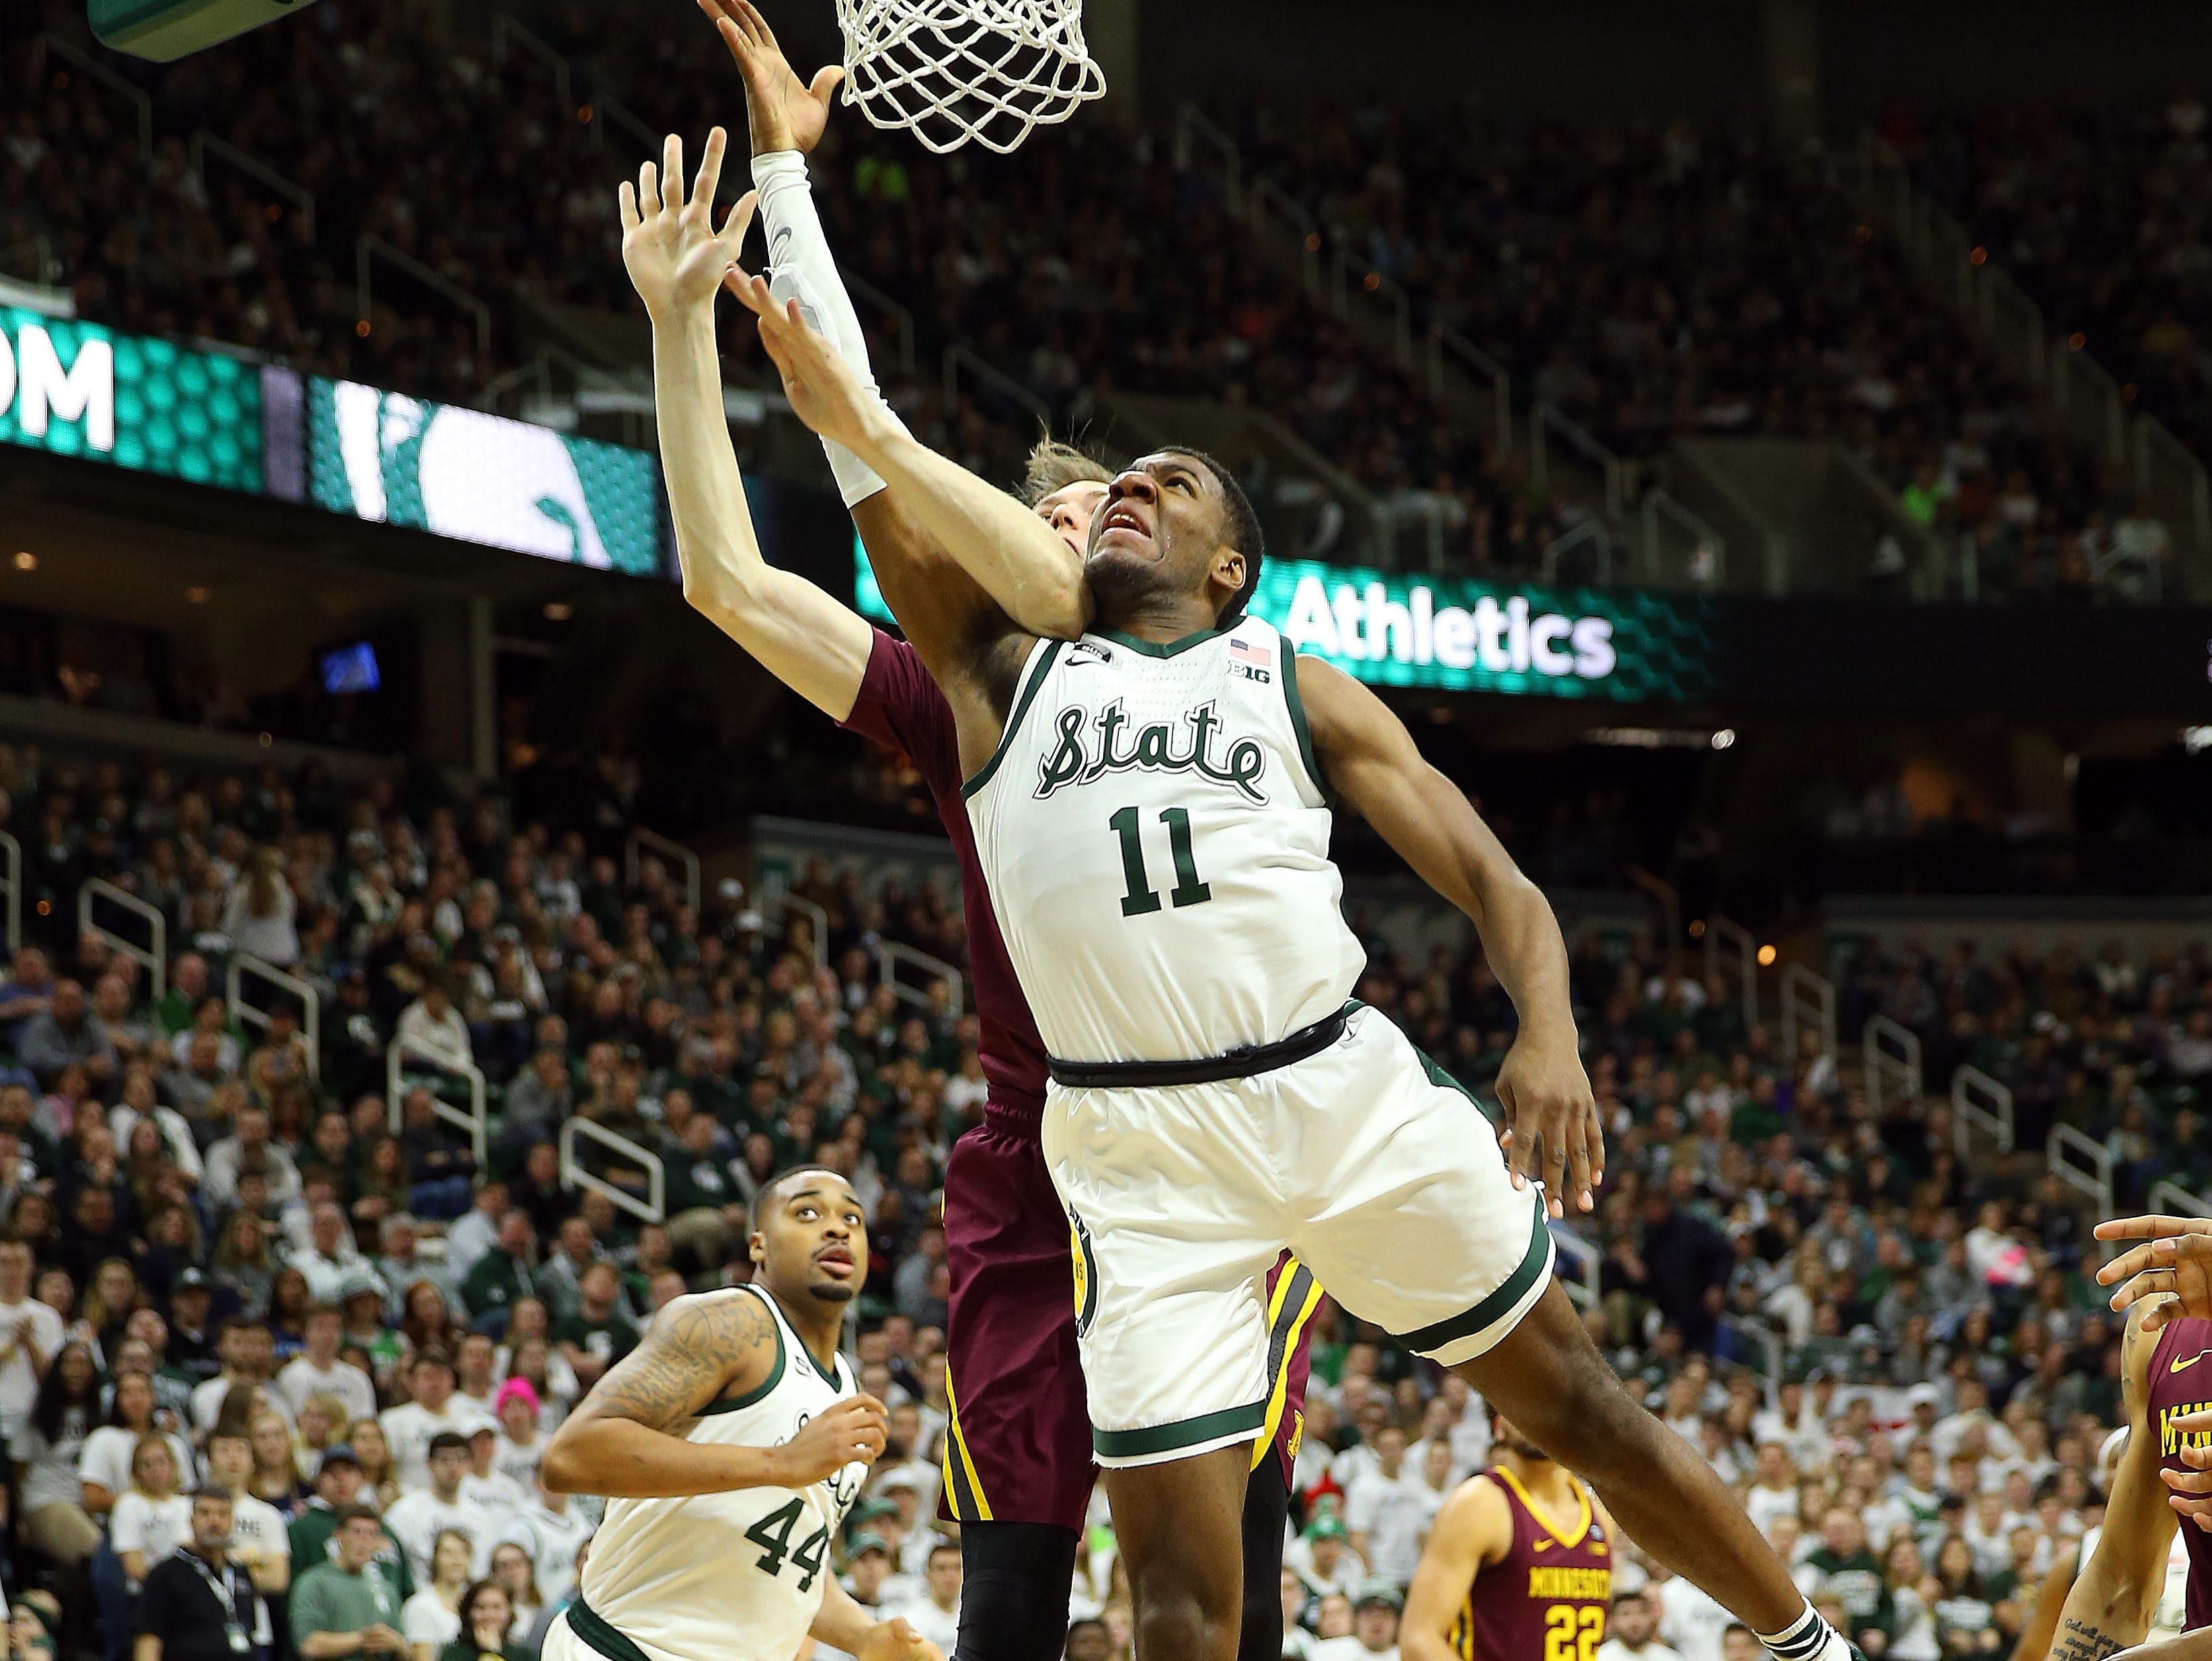 Feb 9, 2019; East Lansing, MI, USA; Michigan State Spartans forward Aaron Henry (11) lays the ball up against the Minnesota Golden Gophers during the second half at the Breslin Center. Mandatory Credit: Mike Carter-USA TODAY Sports